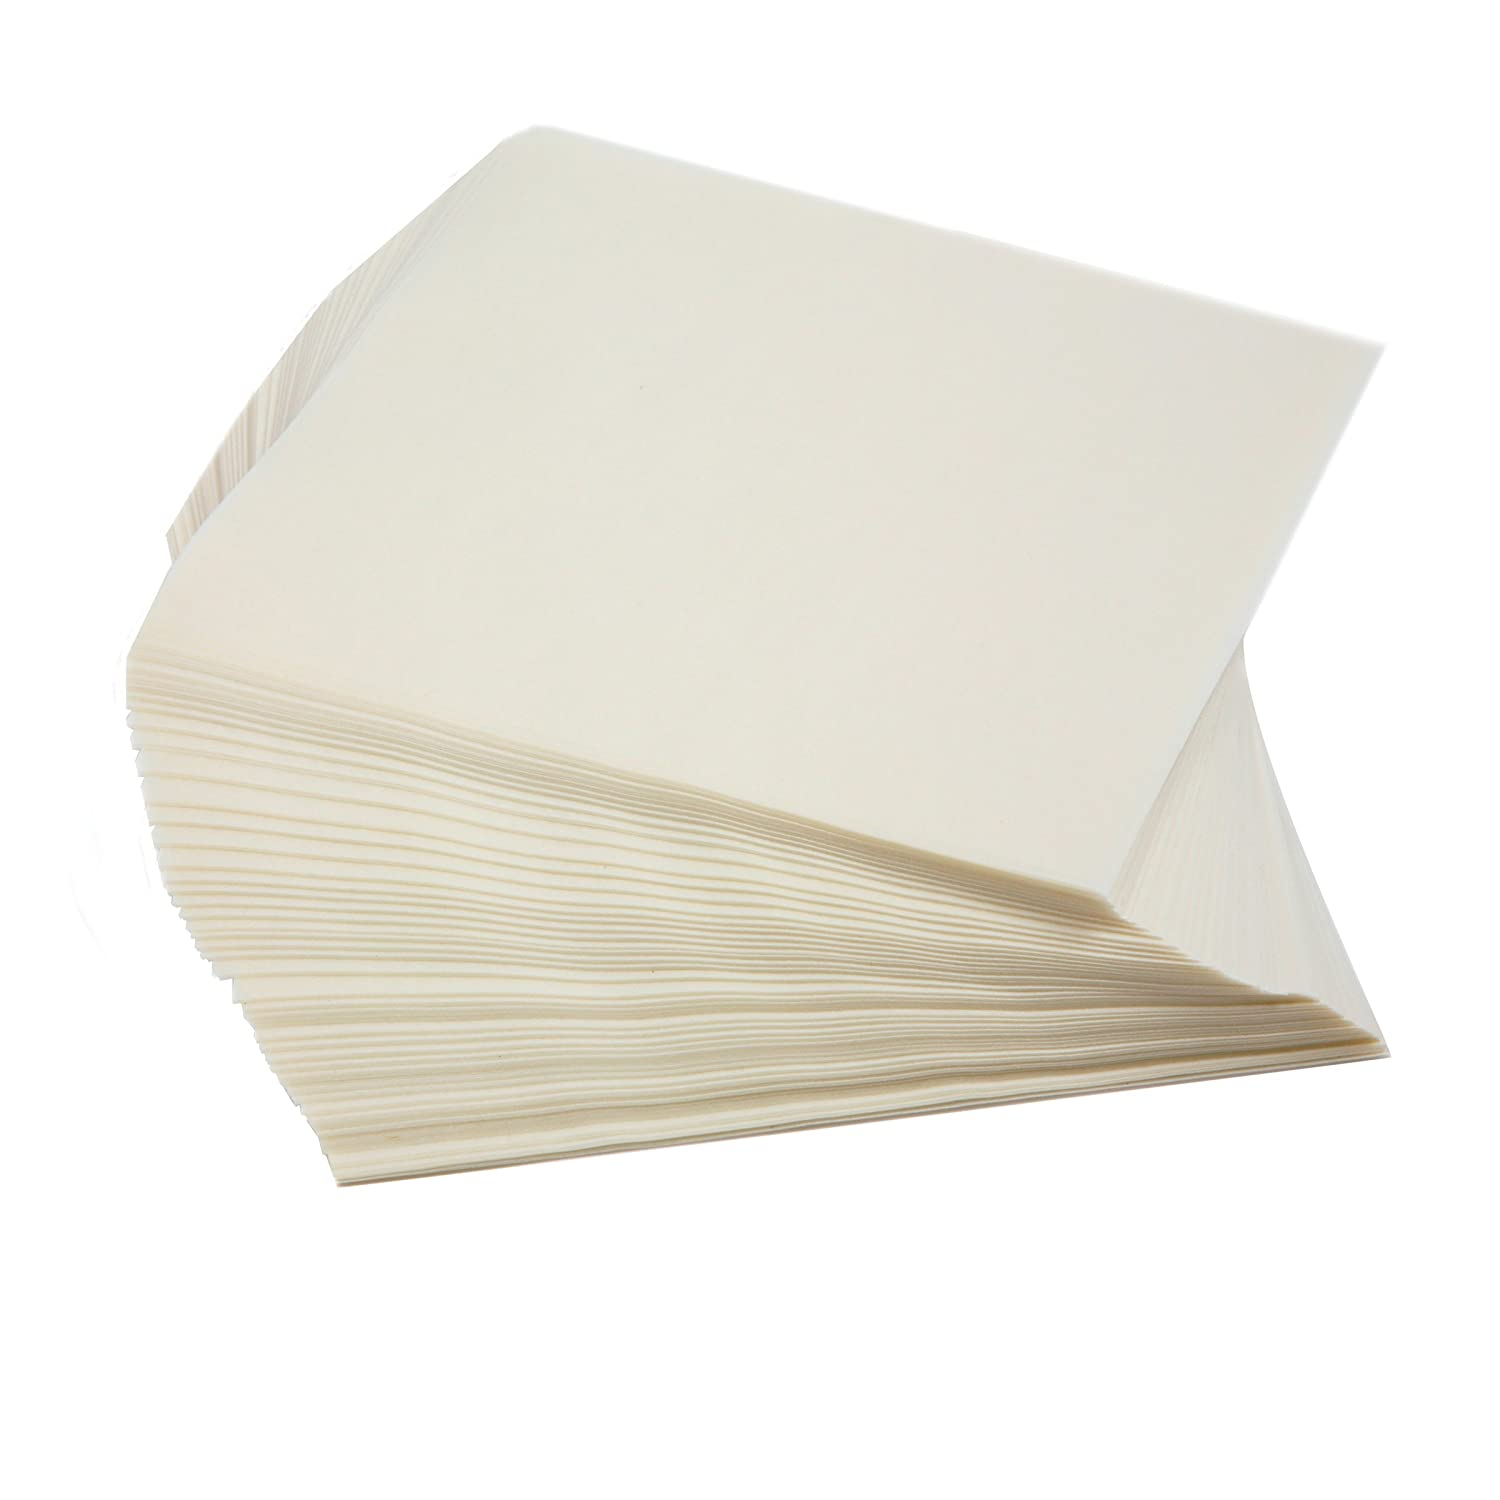 Norpro 3404 Square Wax Papers, 250-Piece